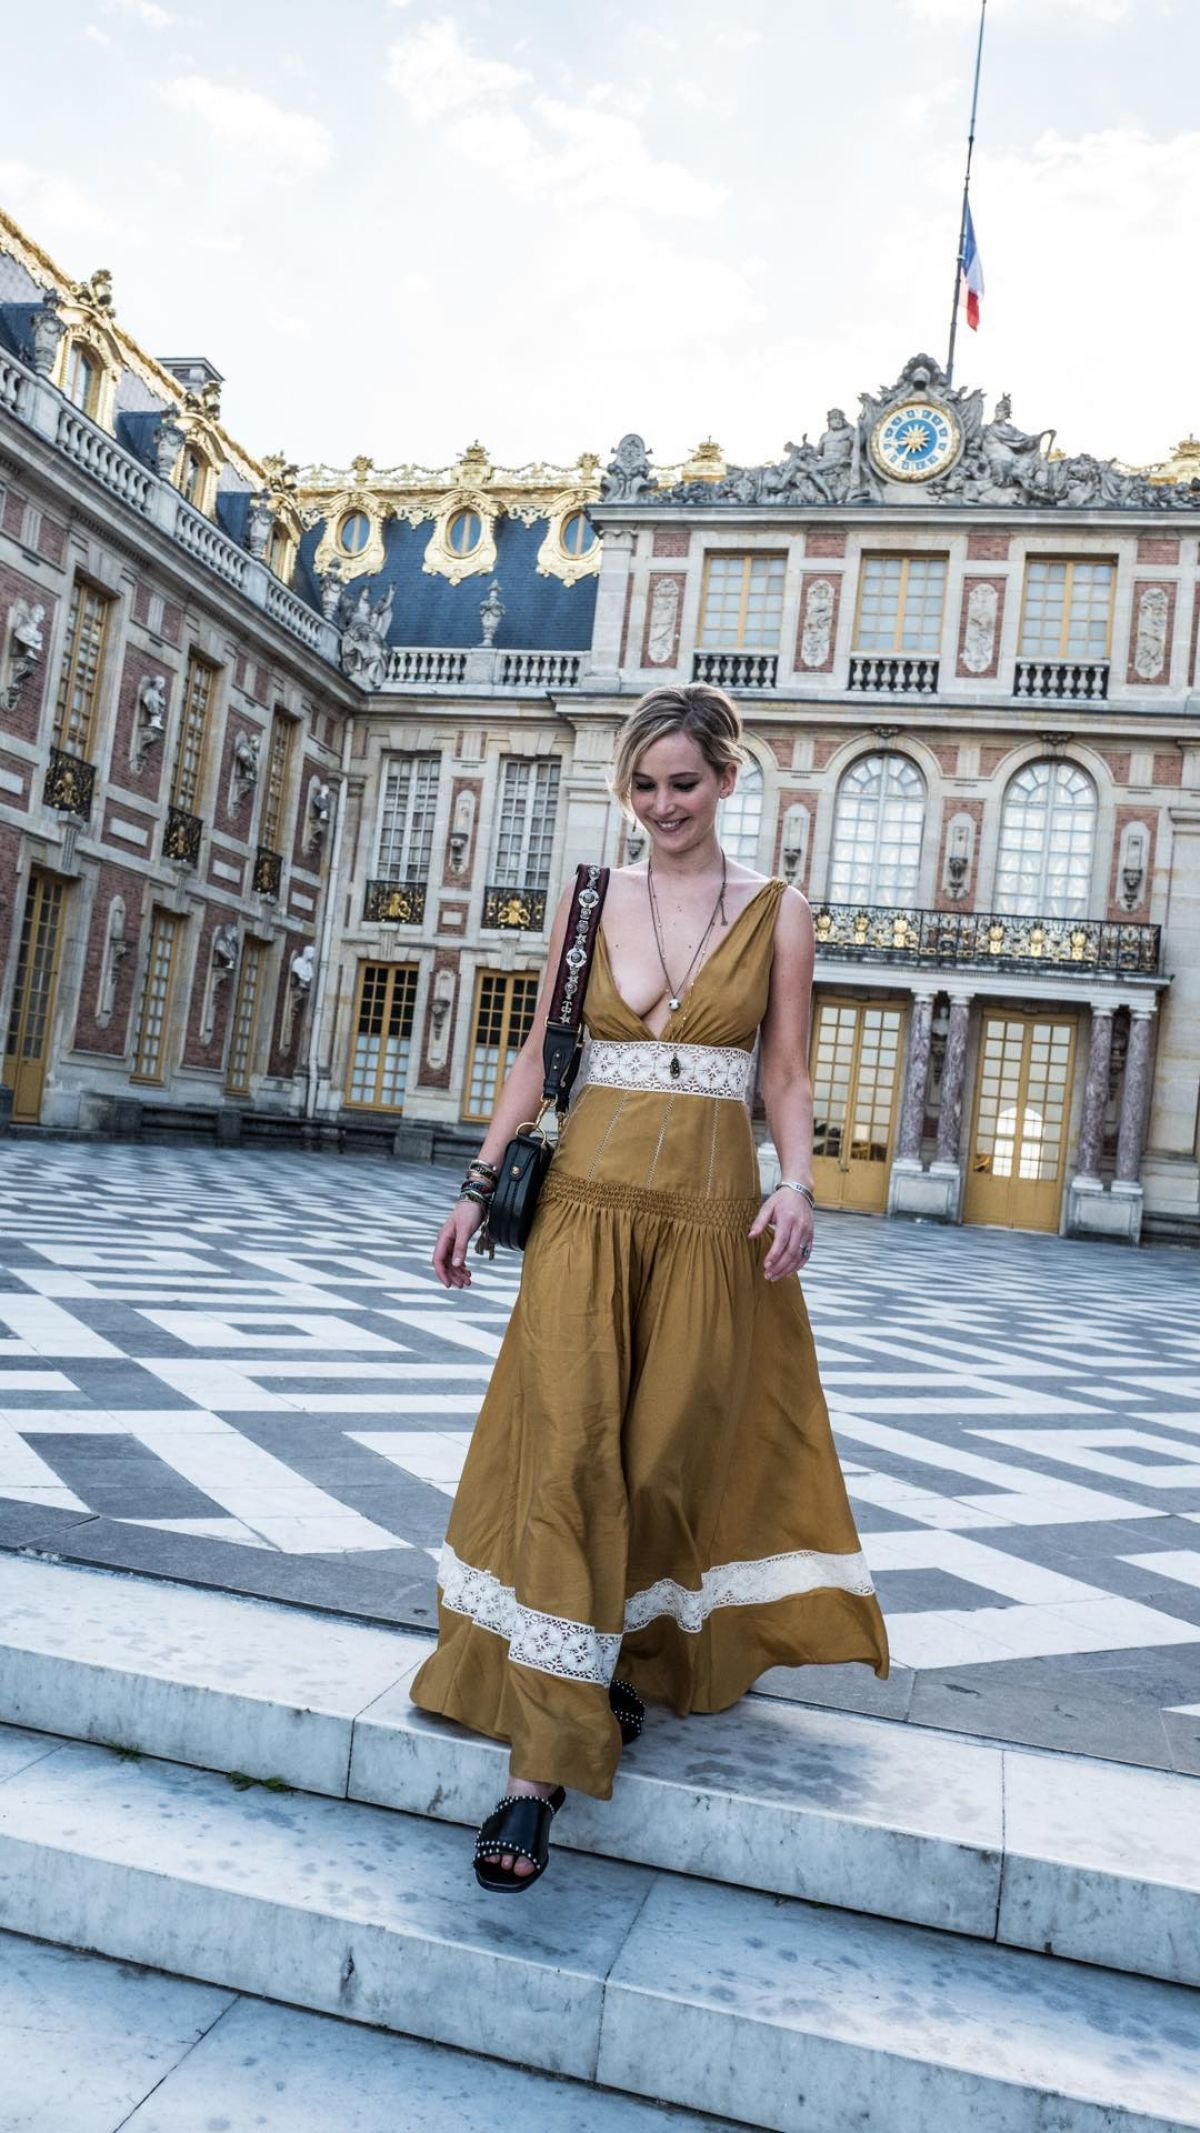 JENNIFER LAWRENCE at Palace of Versailles in Paris, July 2017